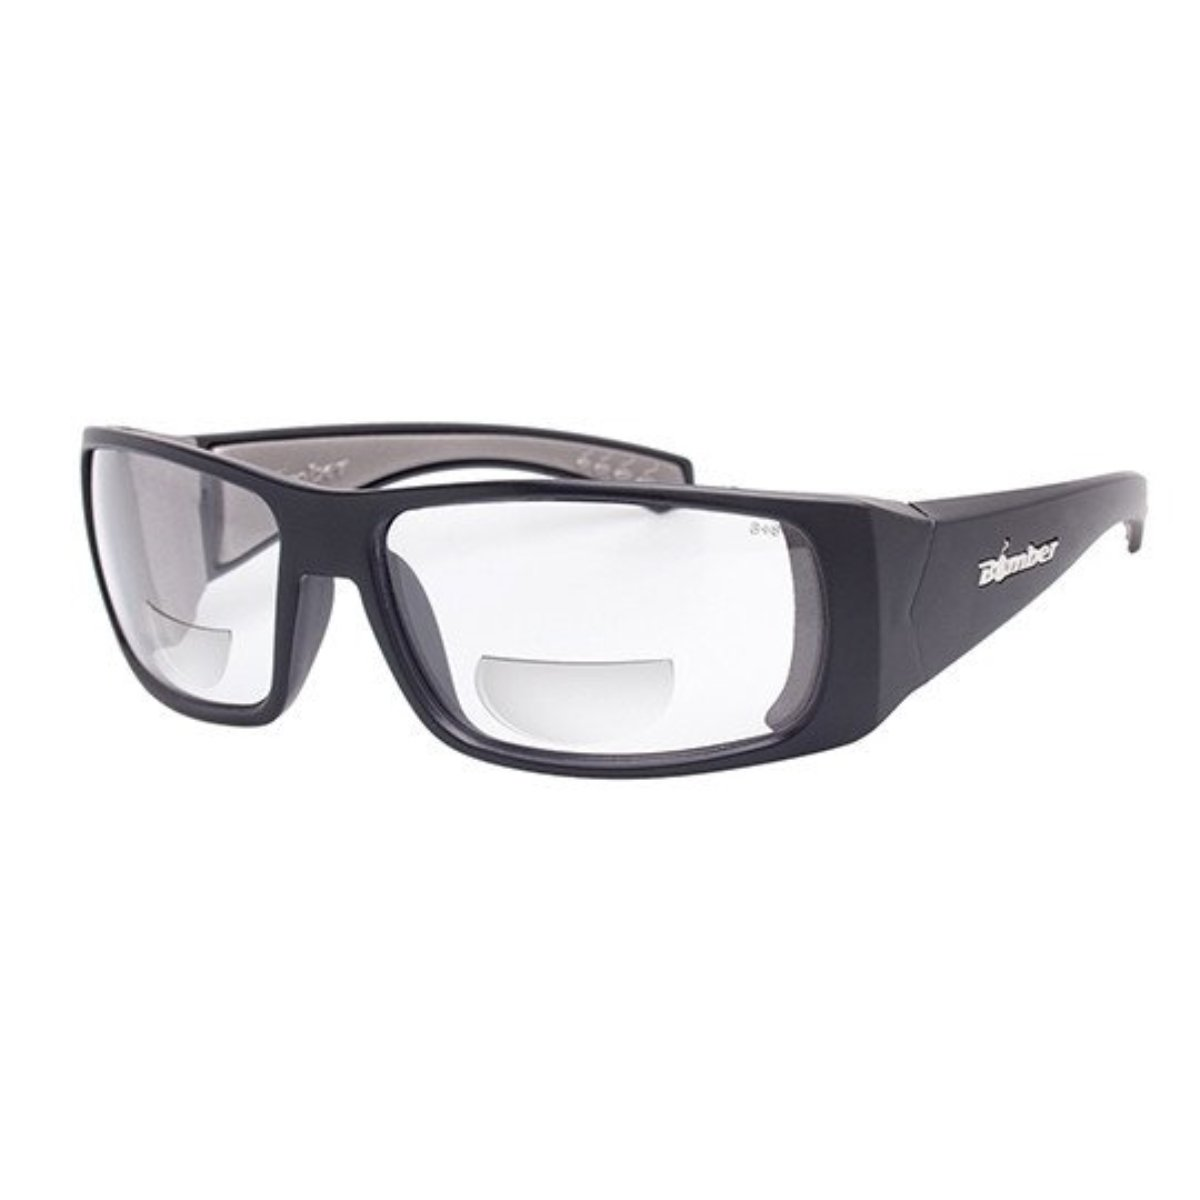 Bomber Sunglasses - Pipe Bomb Matte Black Frm/Clear Pc Safety 2.0 Bi Focal Lens/Gray Foam by Bomber (Image #1)